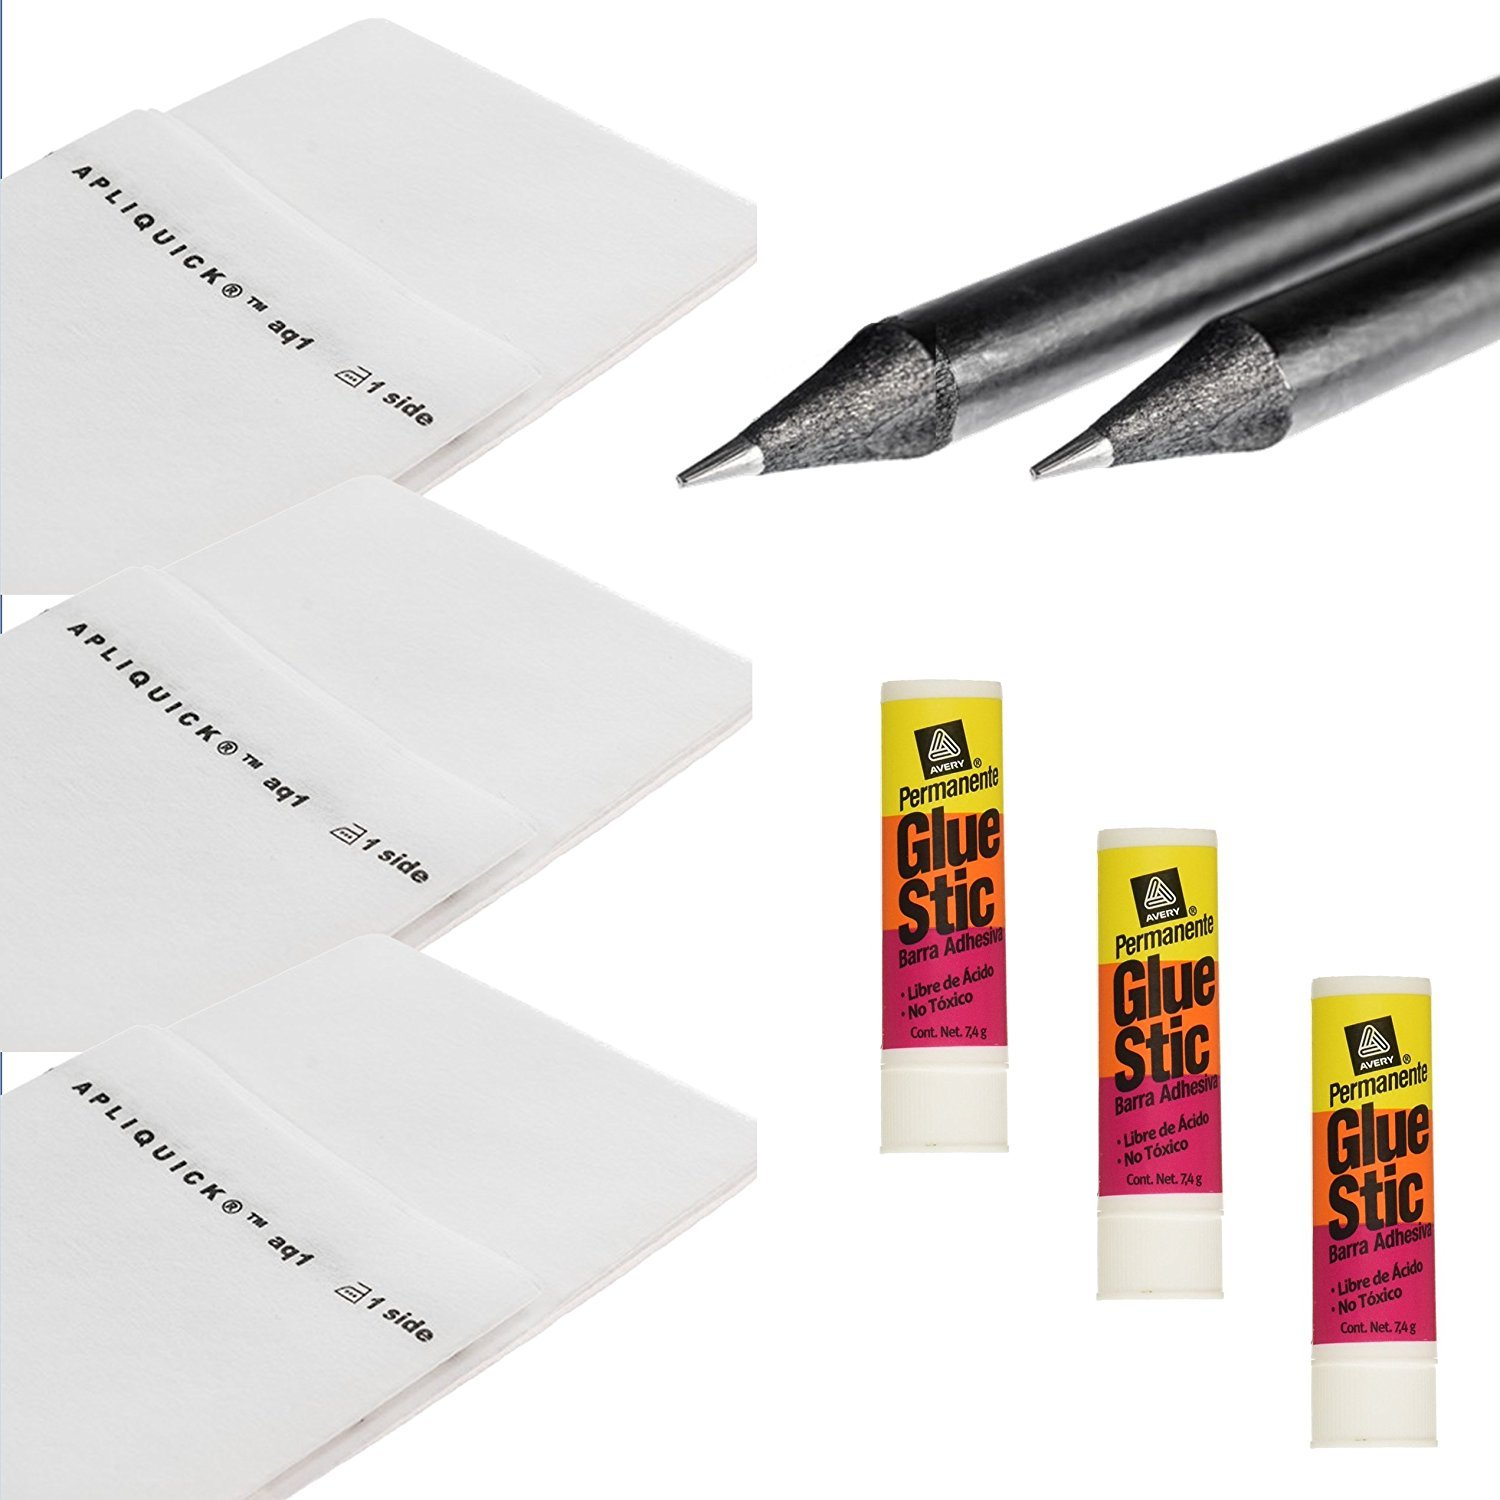 Apliquick Refill Kit - 5 Items: 3 Yards of Apliquick Fusible Stabilizer Bundled with 1 Set of Apliquick Pencils and 3 Avery Fabric Glue Sticks by Apliquick